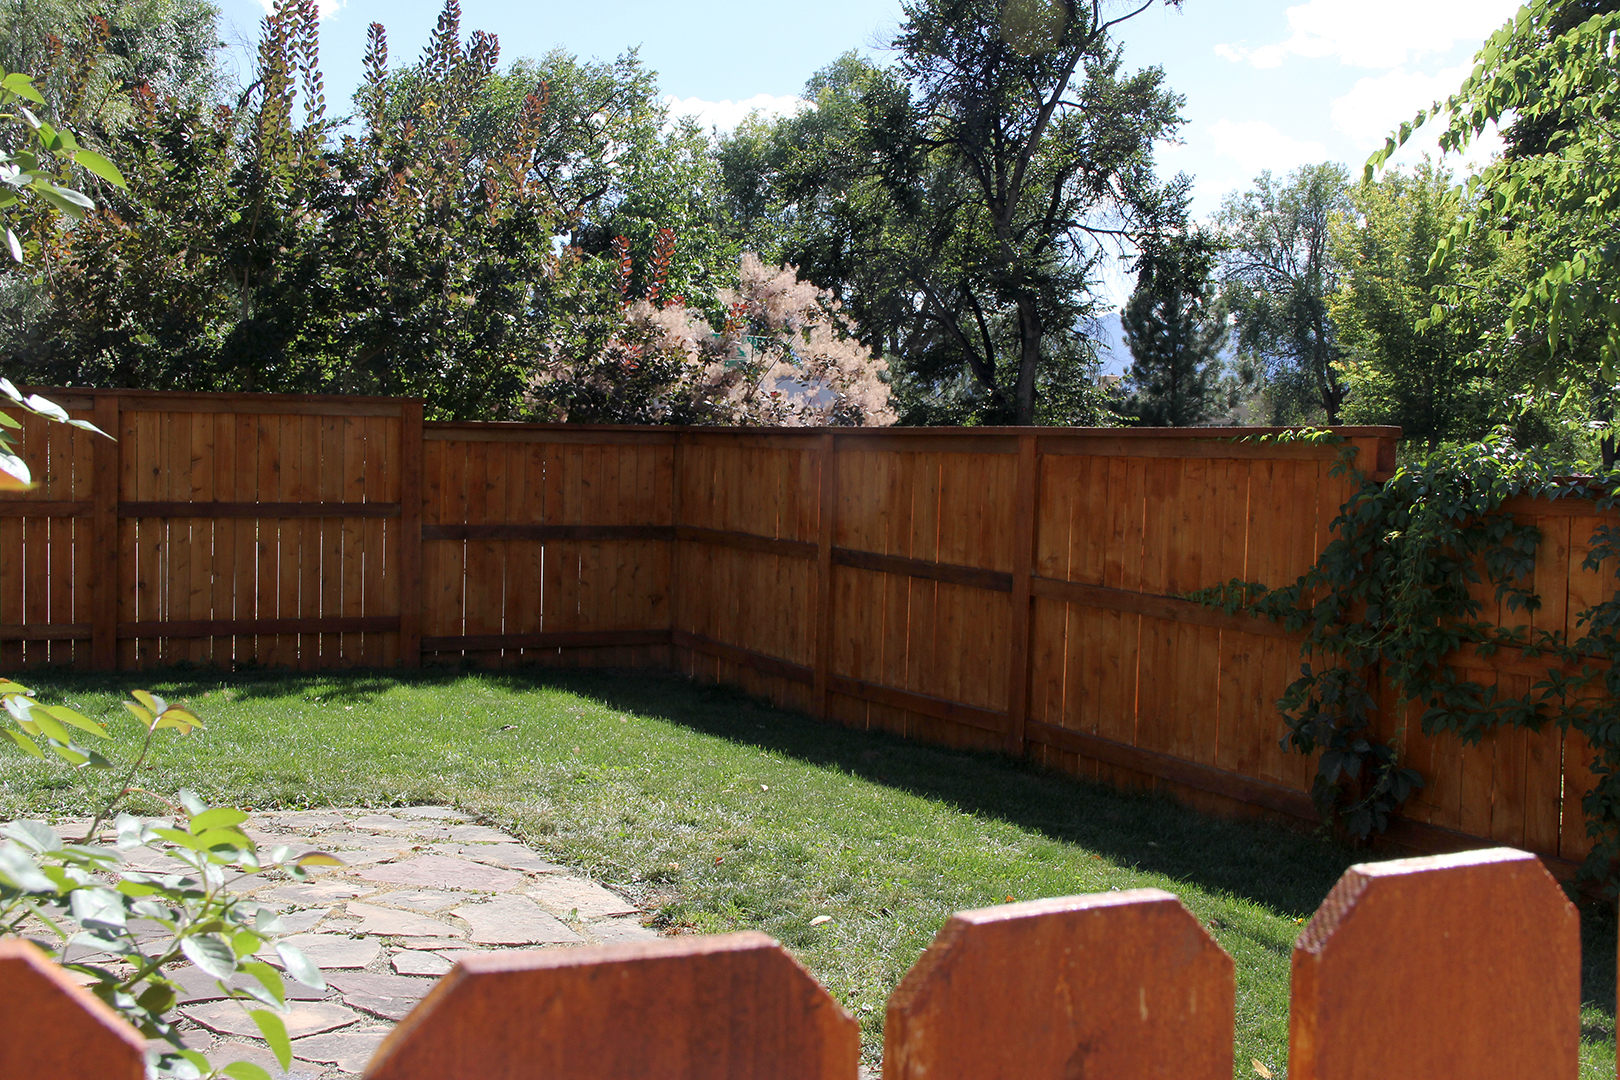 Customized Cedar Fencing for Backyard in Colorado Springs